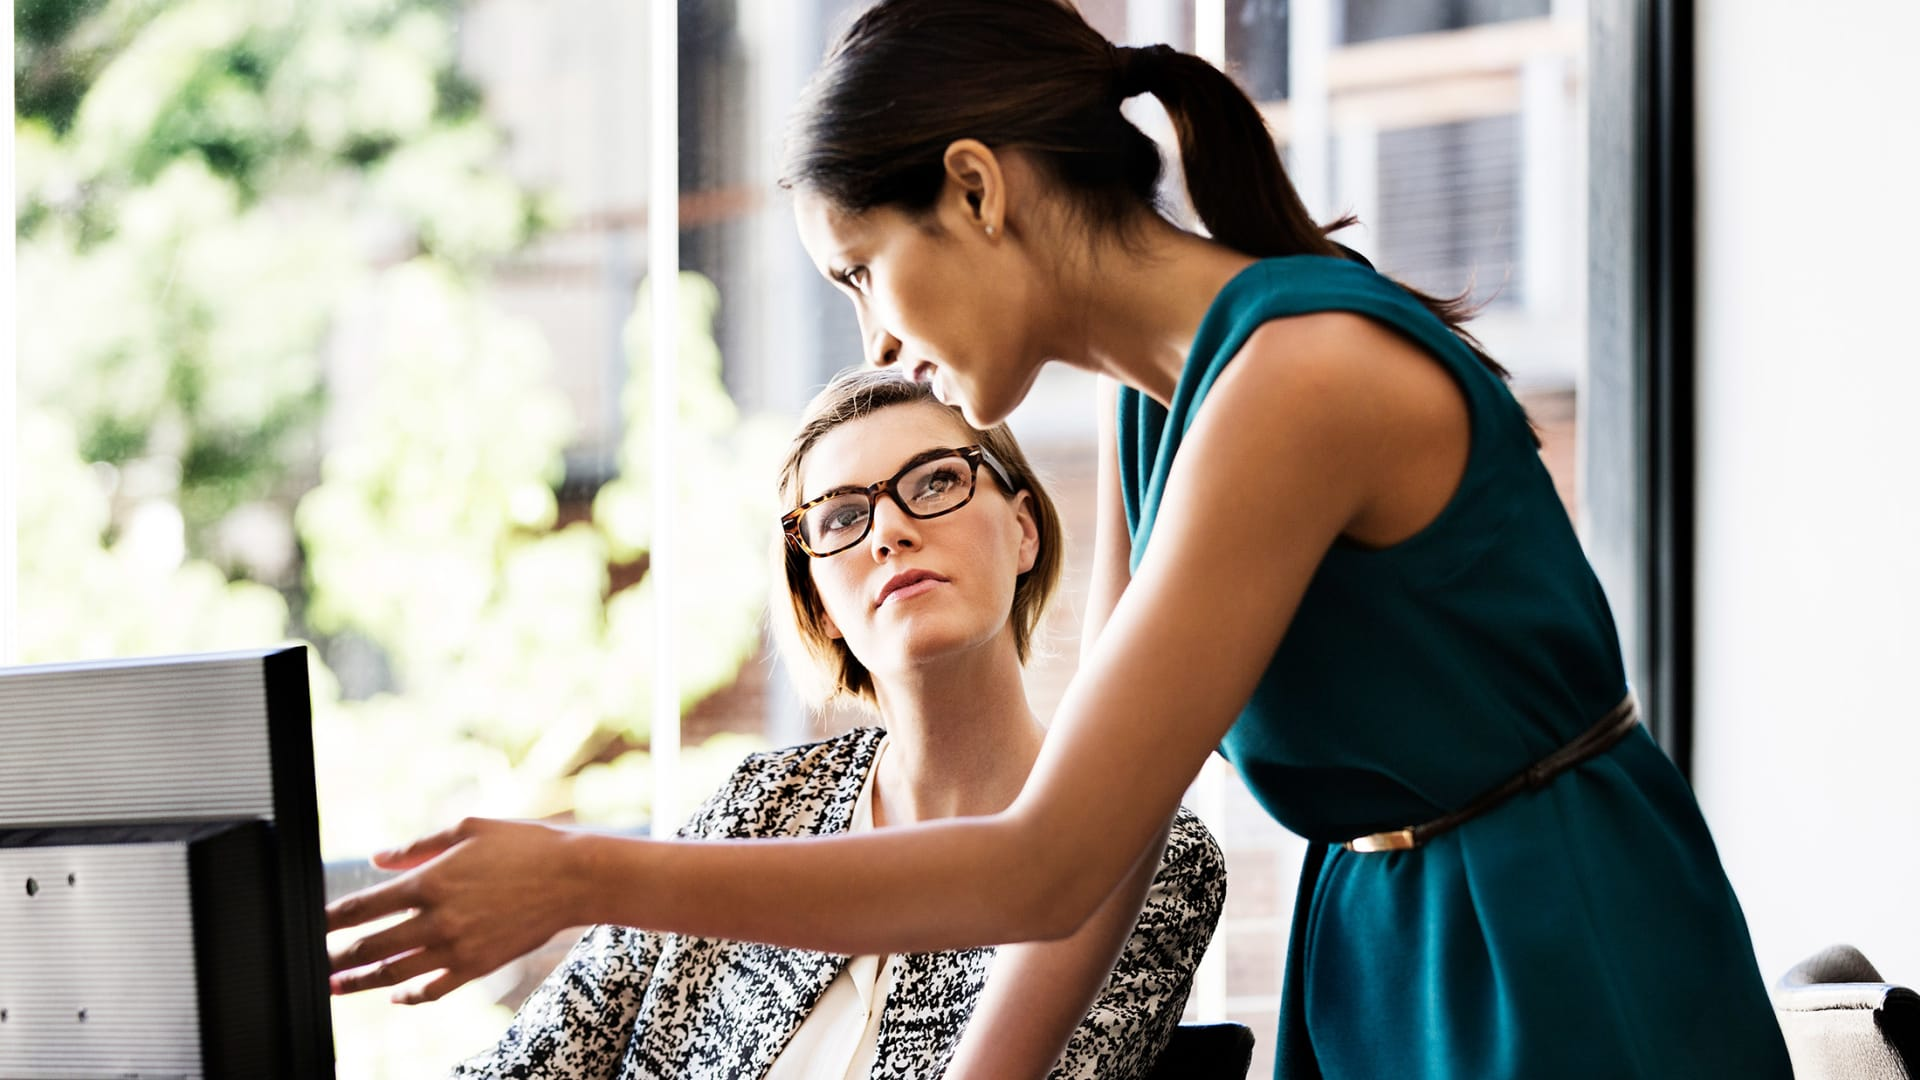 Looking to Take On a Mentee? Here's the 1 Thing You Need to Be Clear About